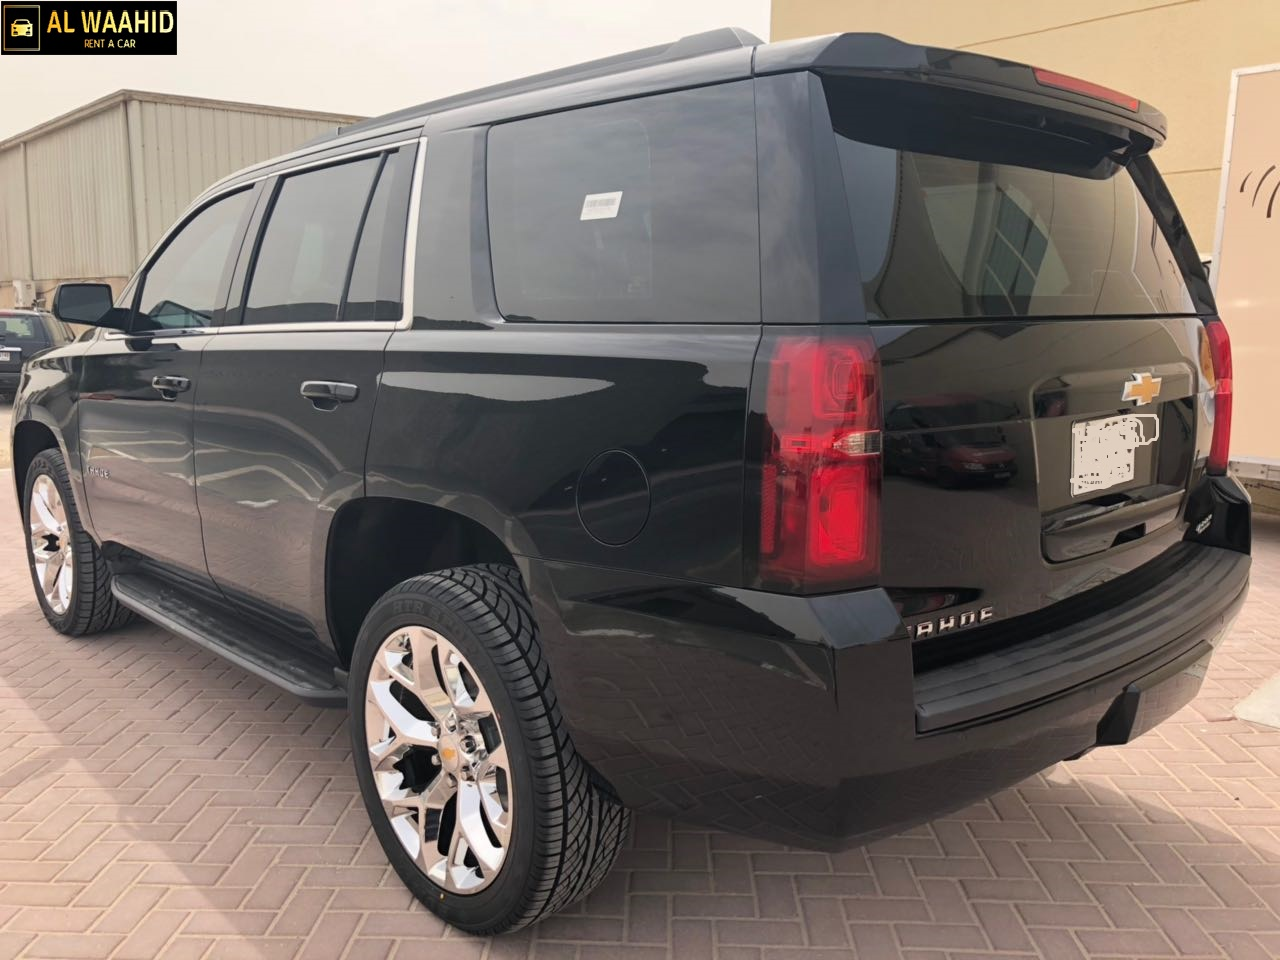 Chevrolet Tahoe 2018 luxury car rental dubai alwaahid rent a car